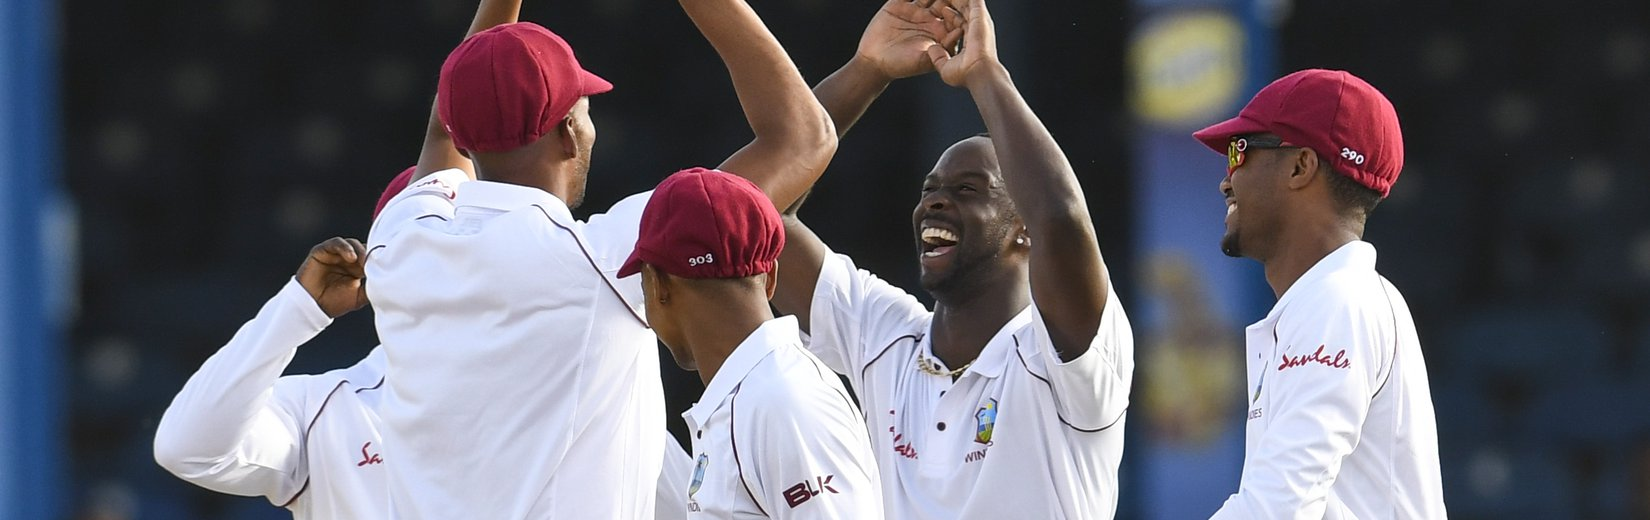 WINDIES SQUAD ANNOUNCED FOR FIRST TEST AGAINST ENGLAND